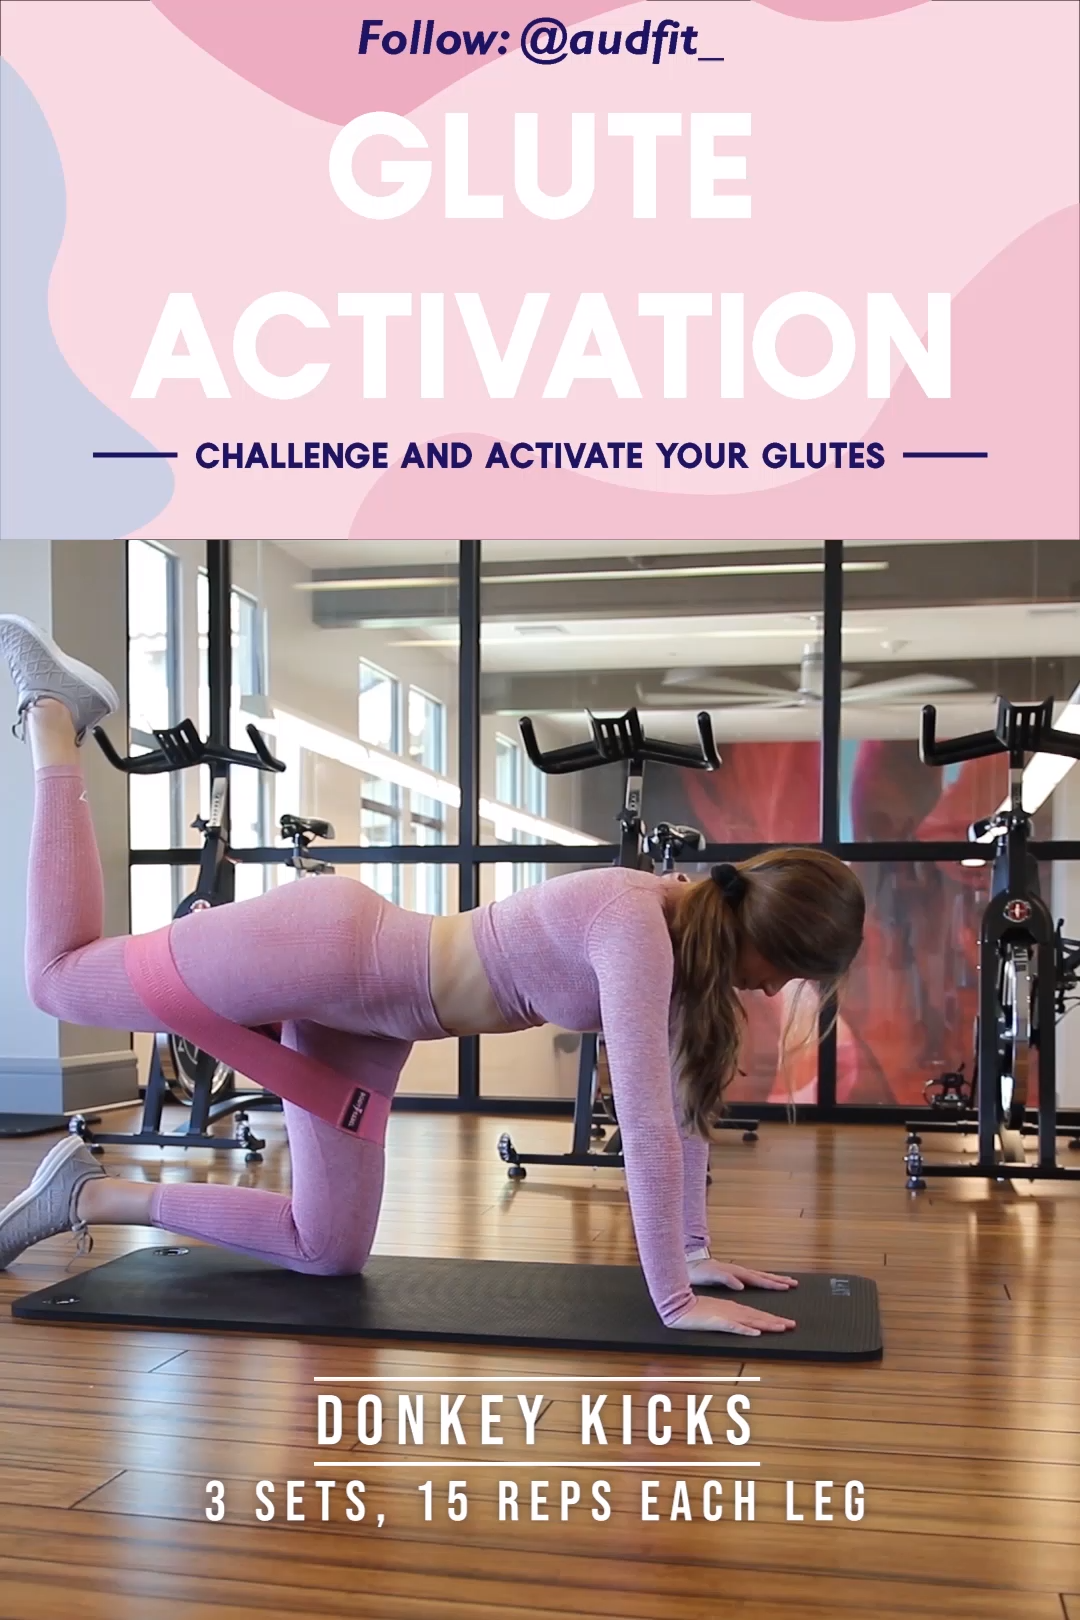 Glute activation is a great way to warm up those glutes for leg day. Do these glute exercises to get the most out of your lower body workouts. Give my top 4 glute activation workouts a shot! Follow me @audfit_ on instagram!  #gluteworkout #gluteactivation #resistanceband